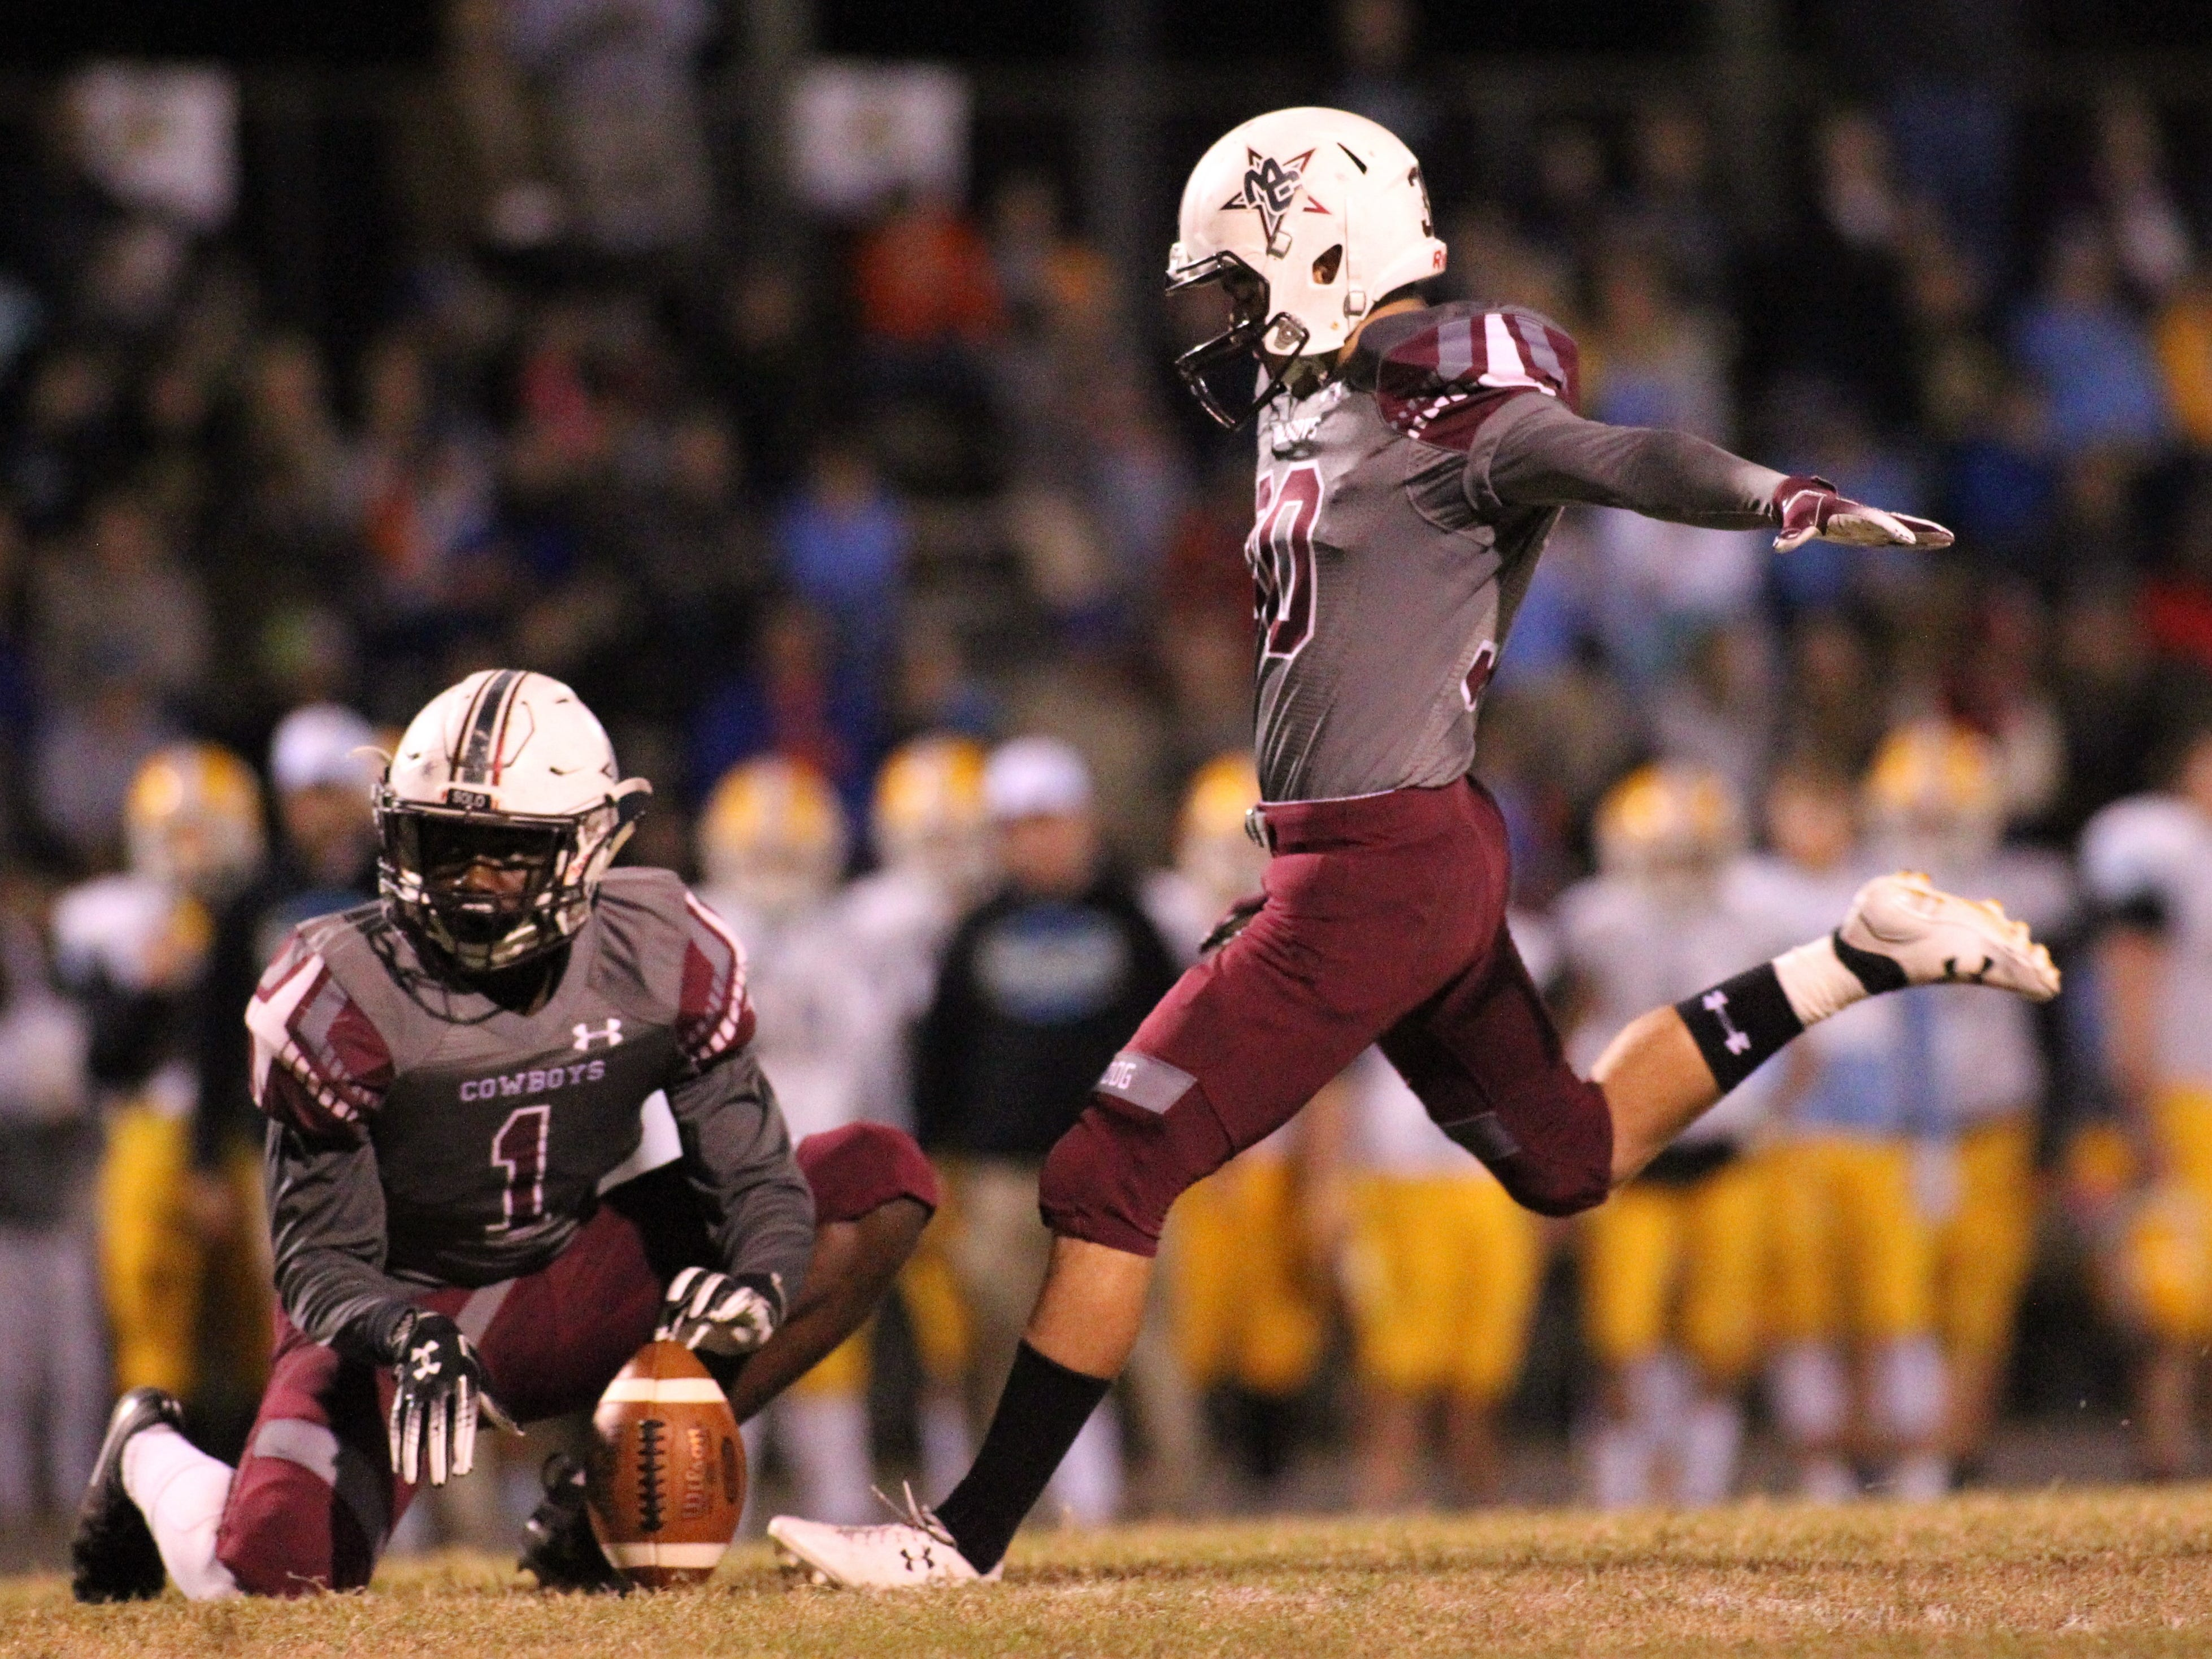 Thomas Miller made all seven of his extra points as Madison County beat Chiefland 49-14 in a Region 3-1A final at Boot Hill Stadium on Friday, Nov. 23, 2018.